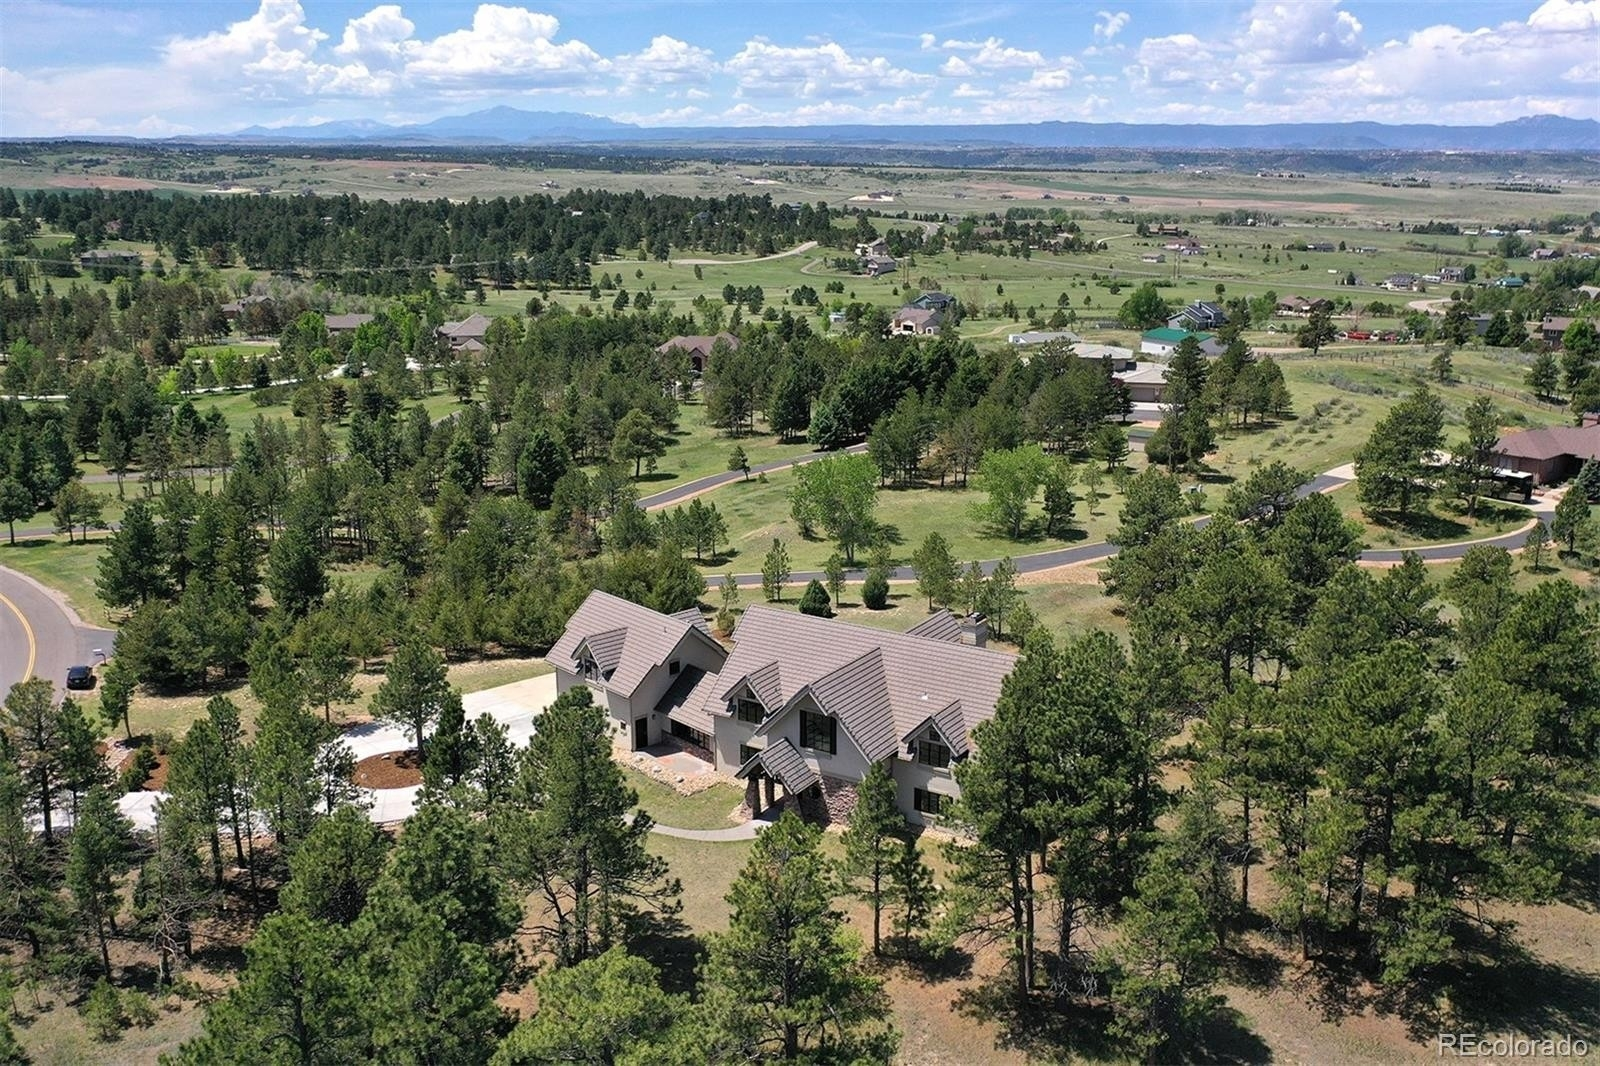 Property at Parker, CO 80134